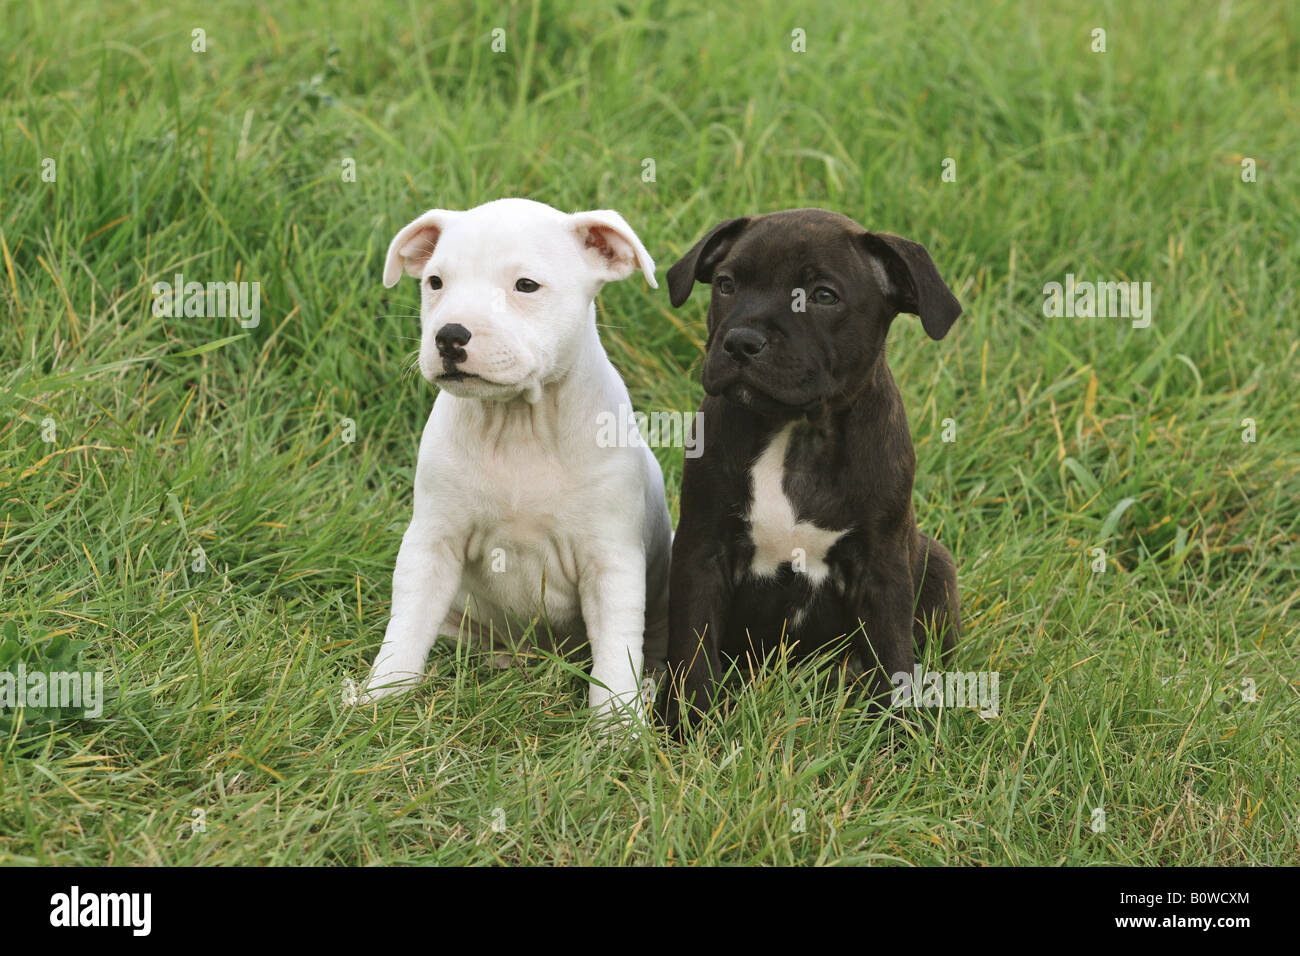 two staffordshire bullterrier puppies  - sitting on meadow - Stock Image